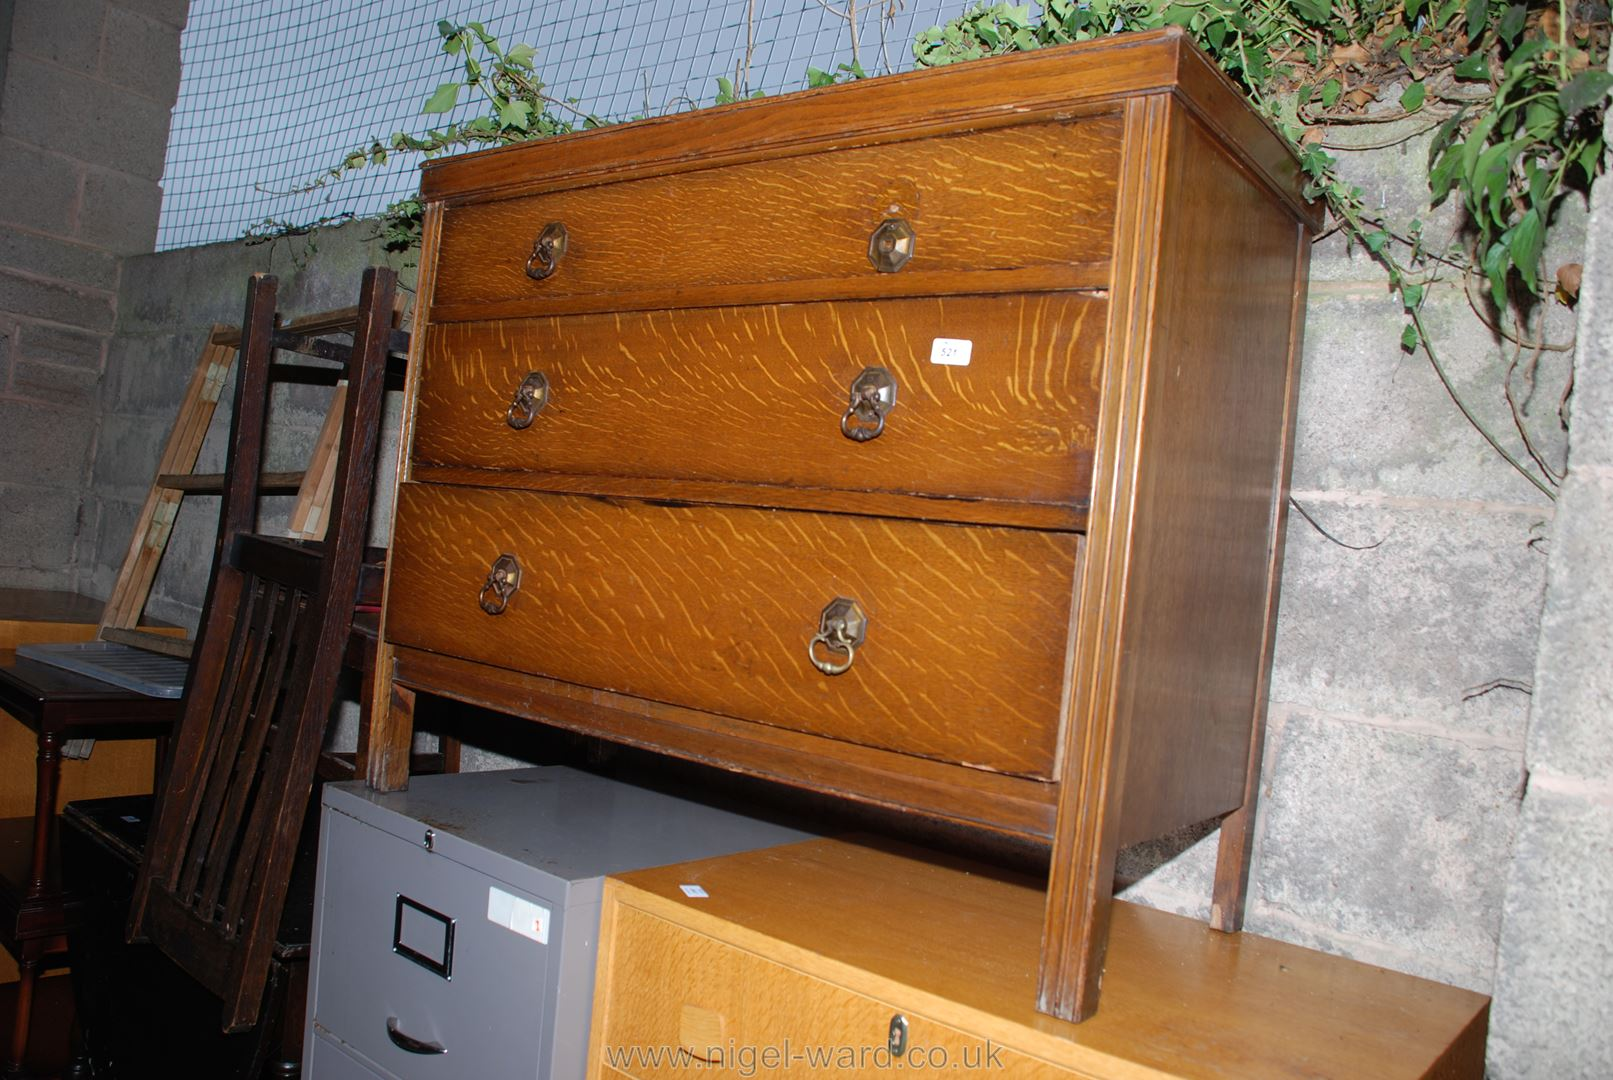 A three-drawer bedroom chest.